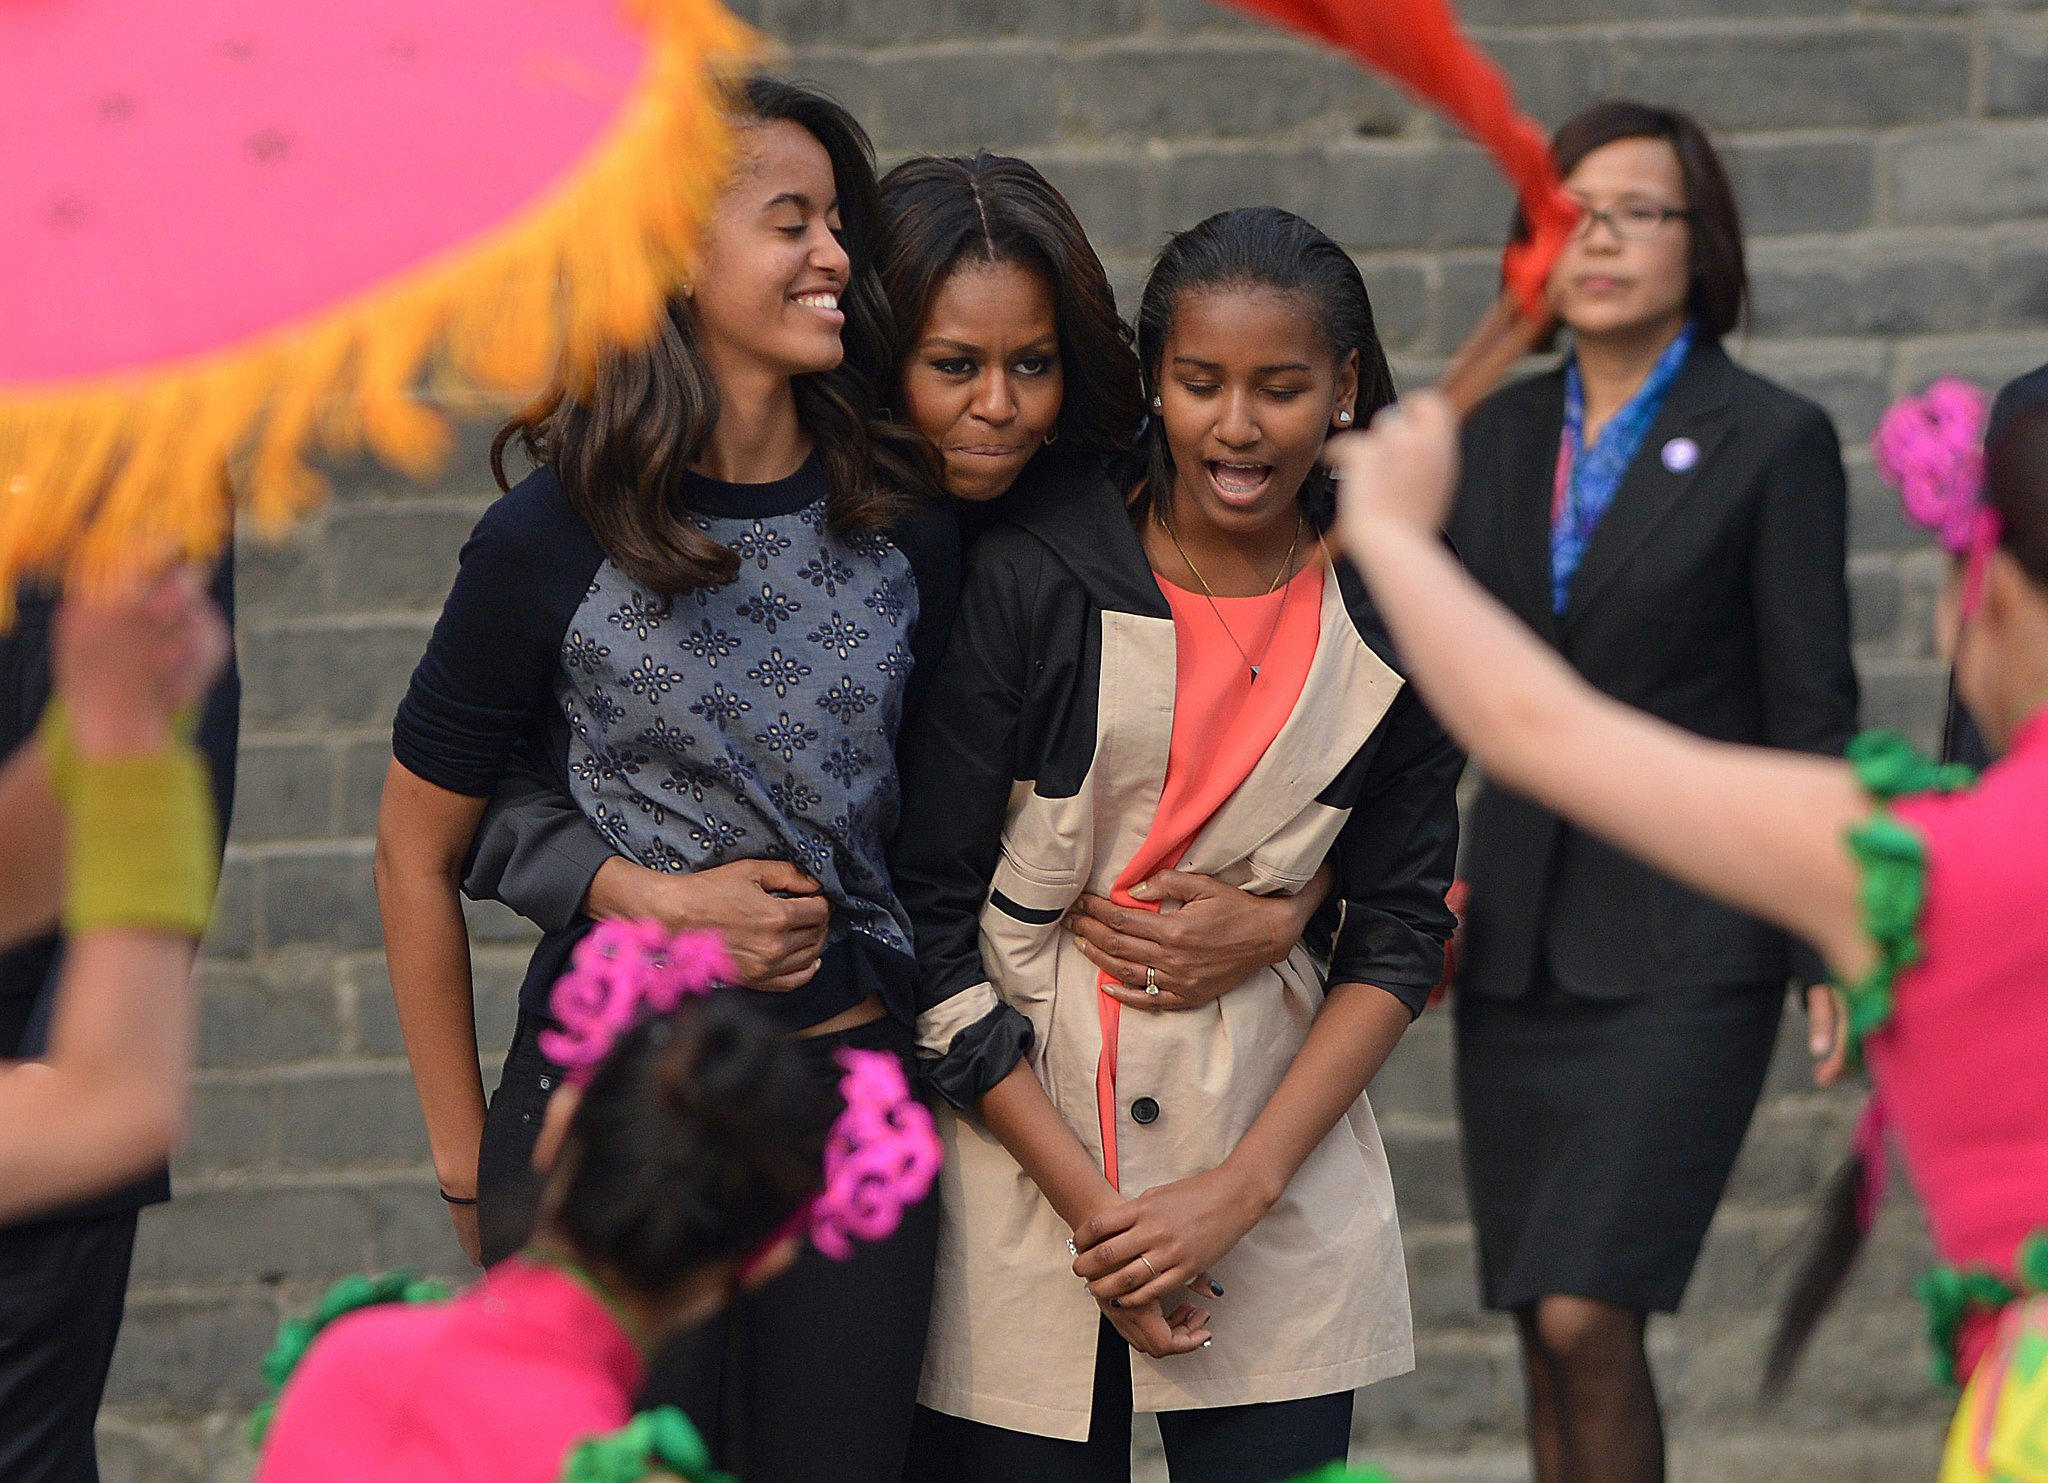 Michelle Obama hugged Malia and Sasha while they watched a traditional performance in Xi'an.